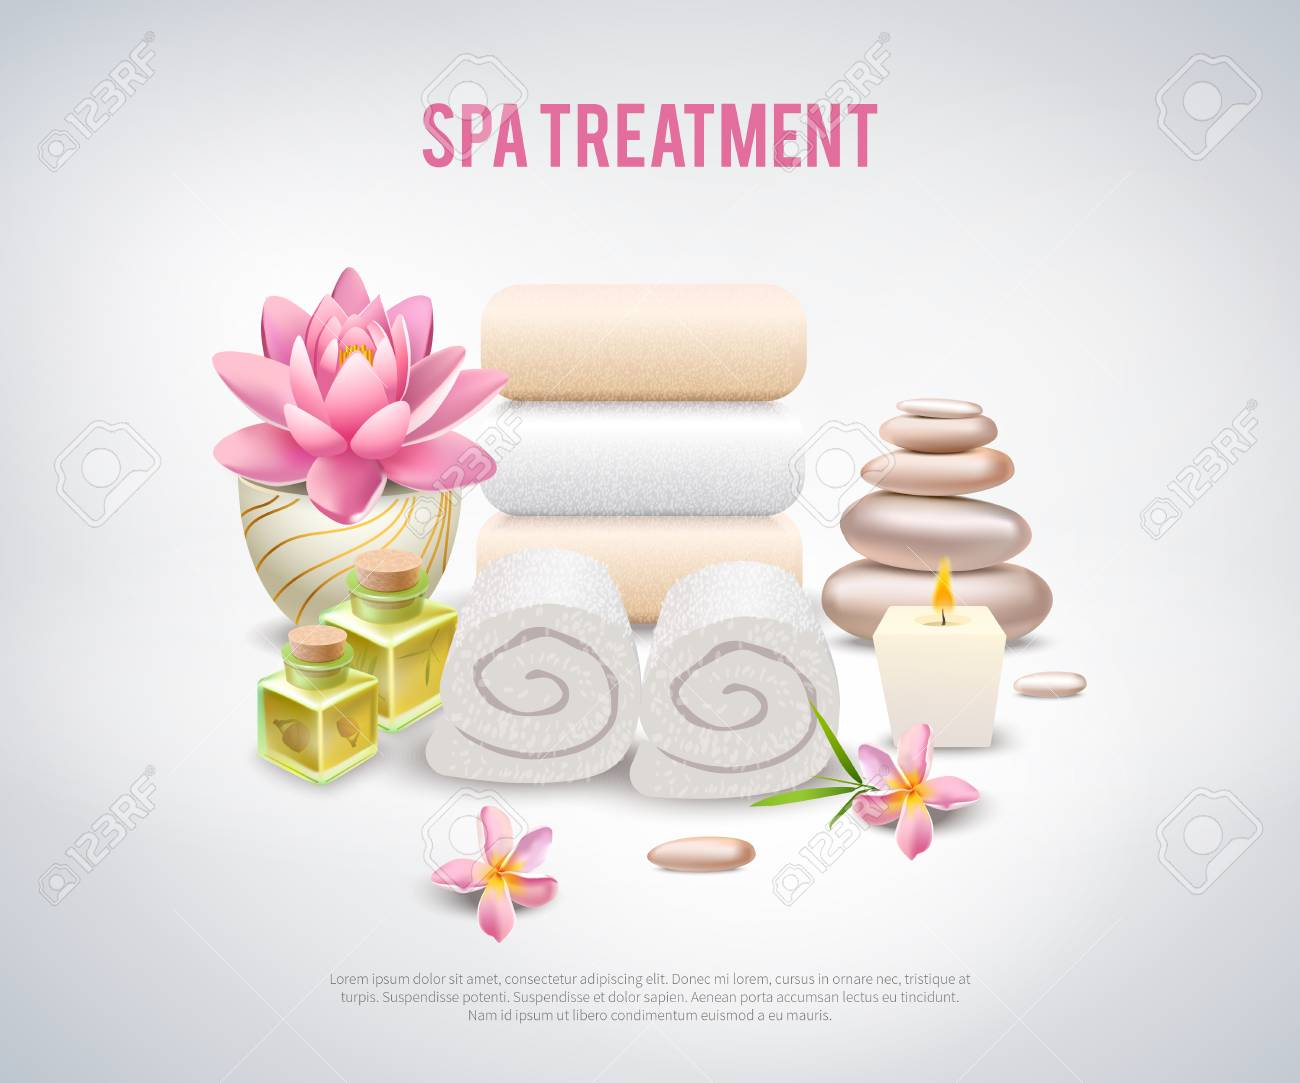 Spa Treatment White Poster With Ingredients For Stone And Aroma